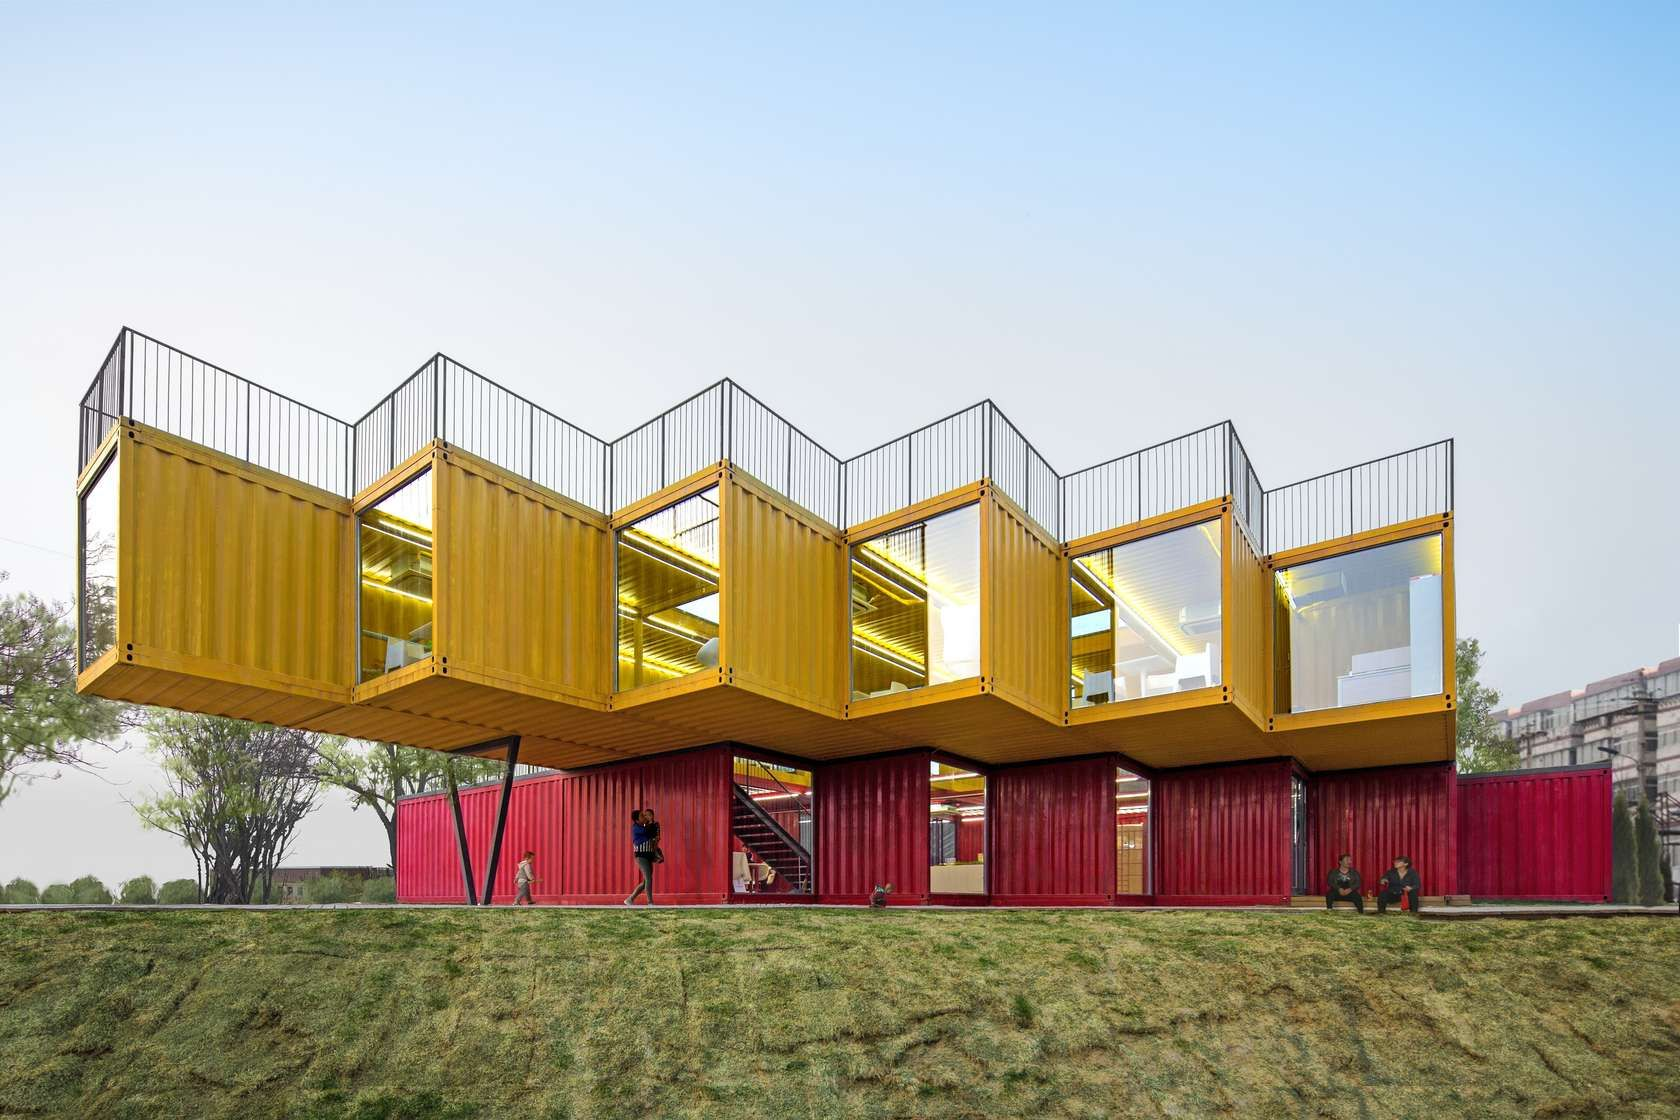 shipping container office plans. Shipping Containers Stacked And Shifted In Plan Layered Elevation Maximize Rooftop Views Shaded Container Office Plans